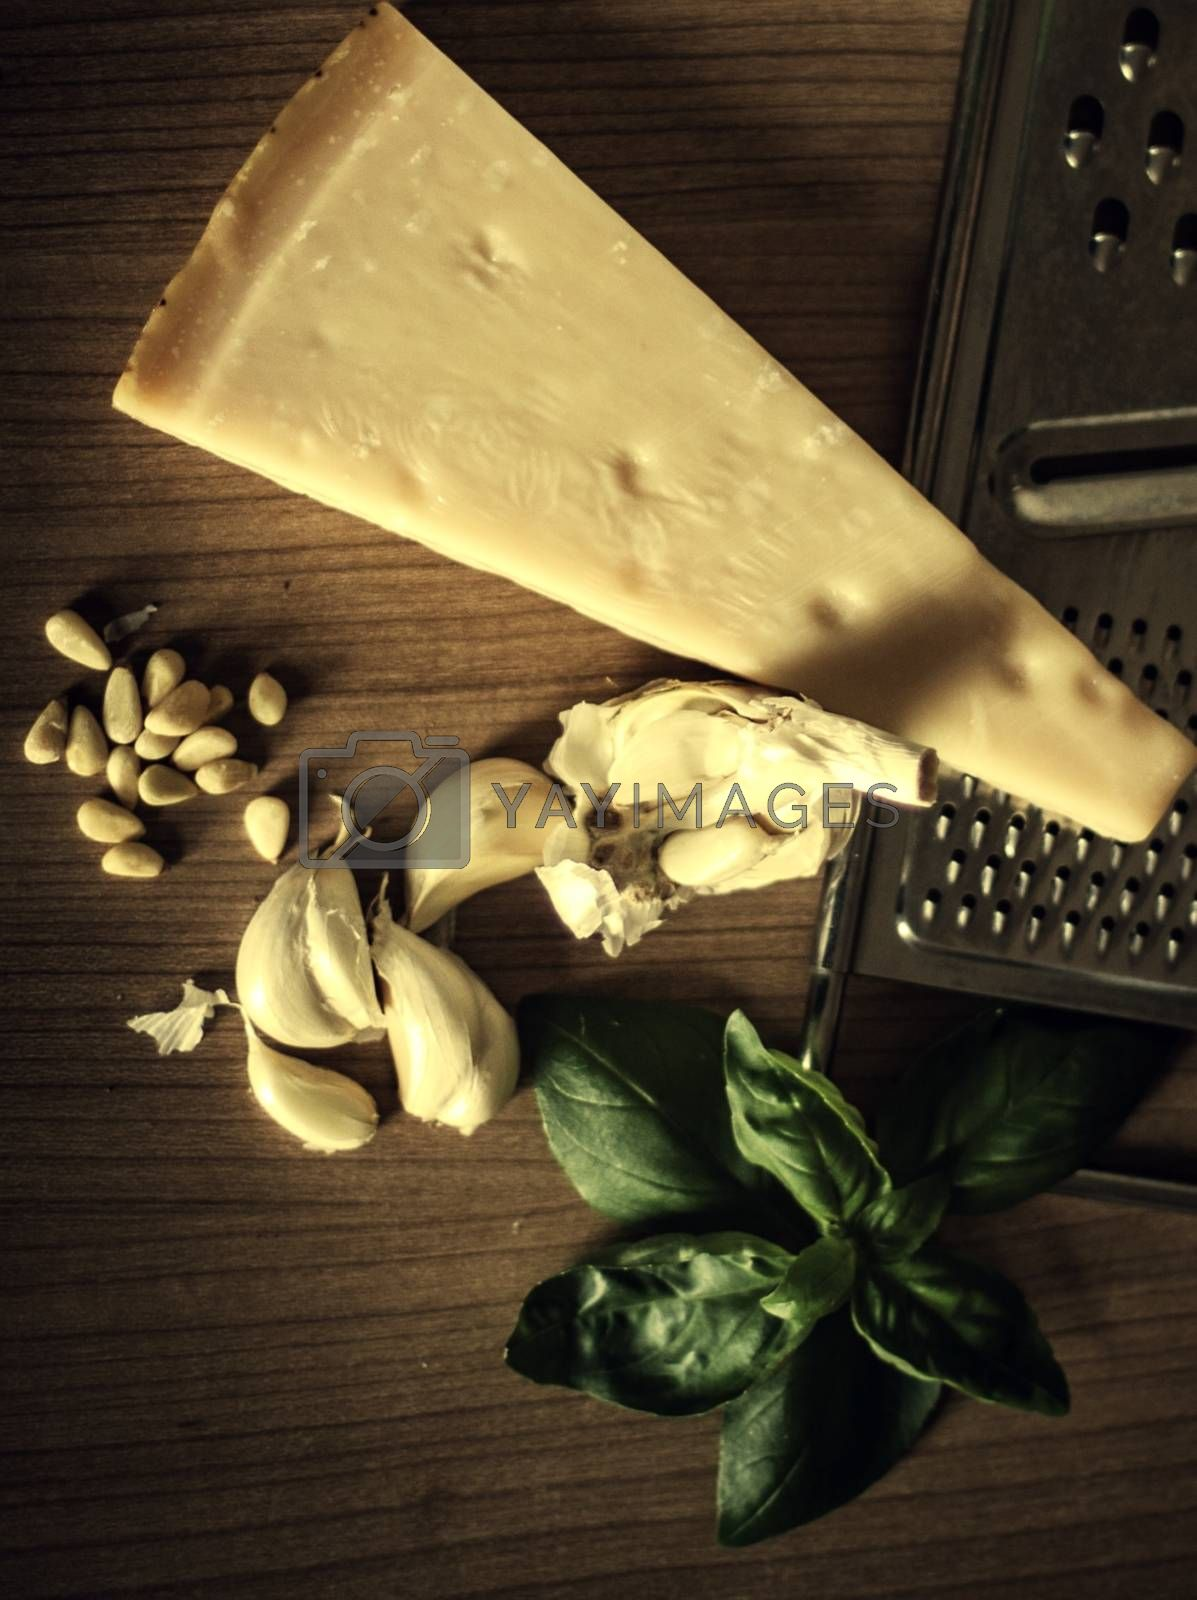 Royalty free image of Parmesan cheese with mint and garlic on the table by balage941